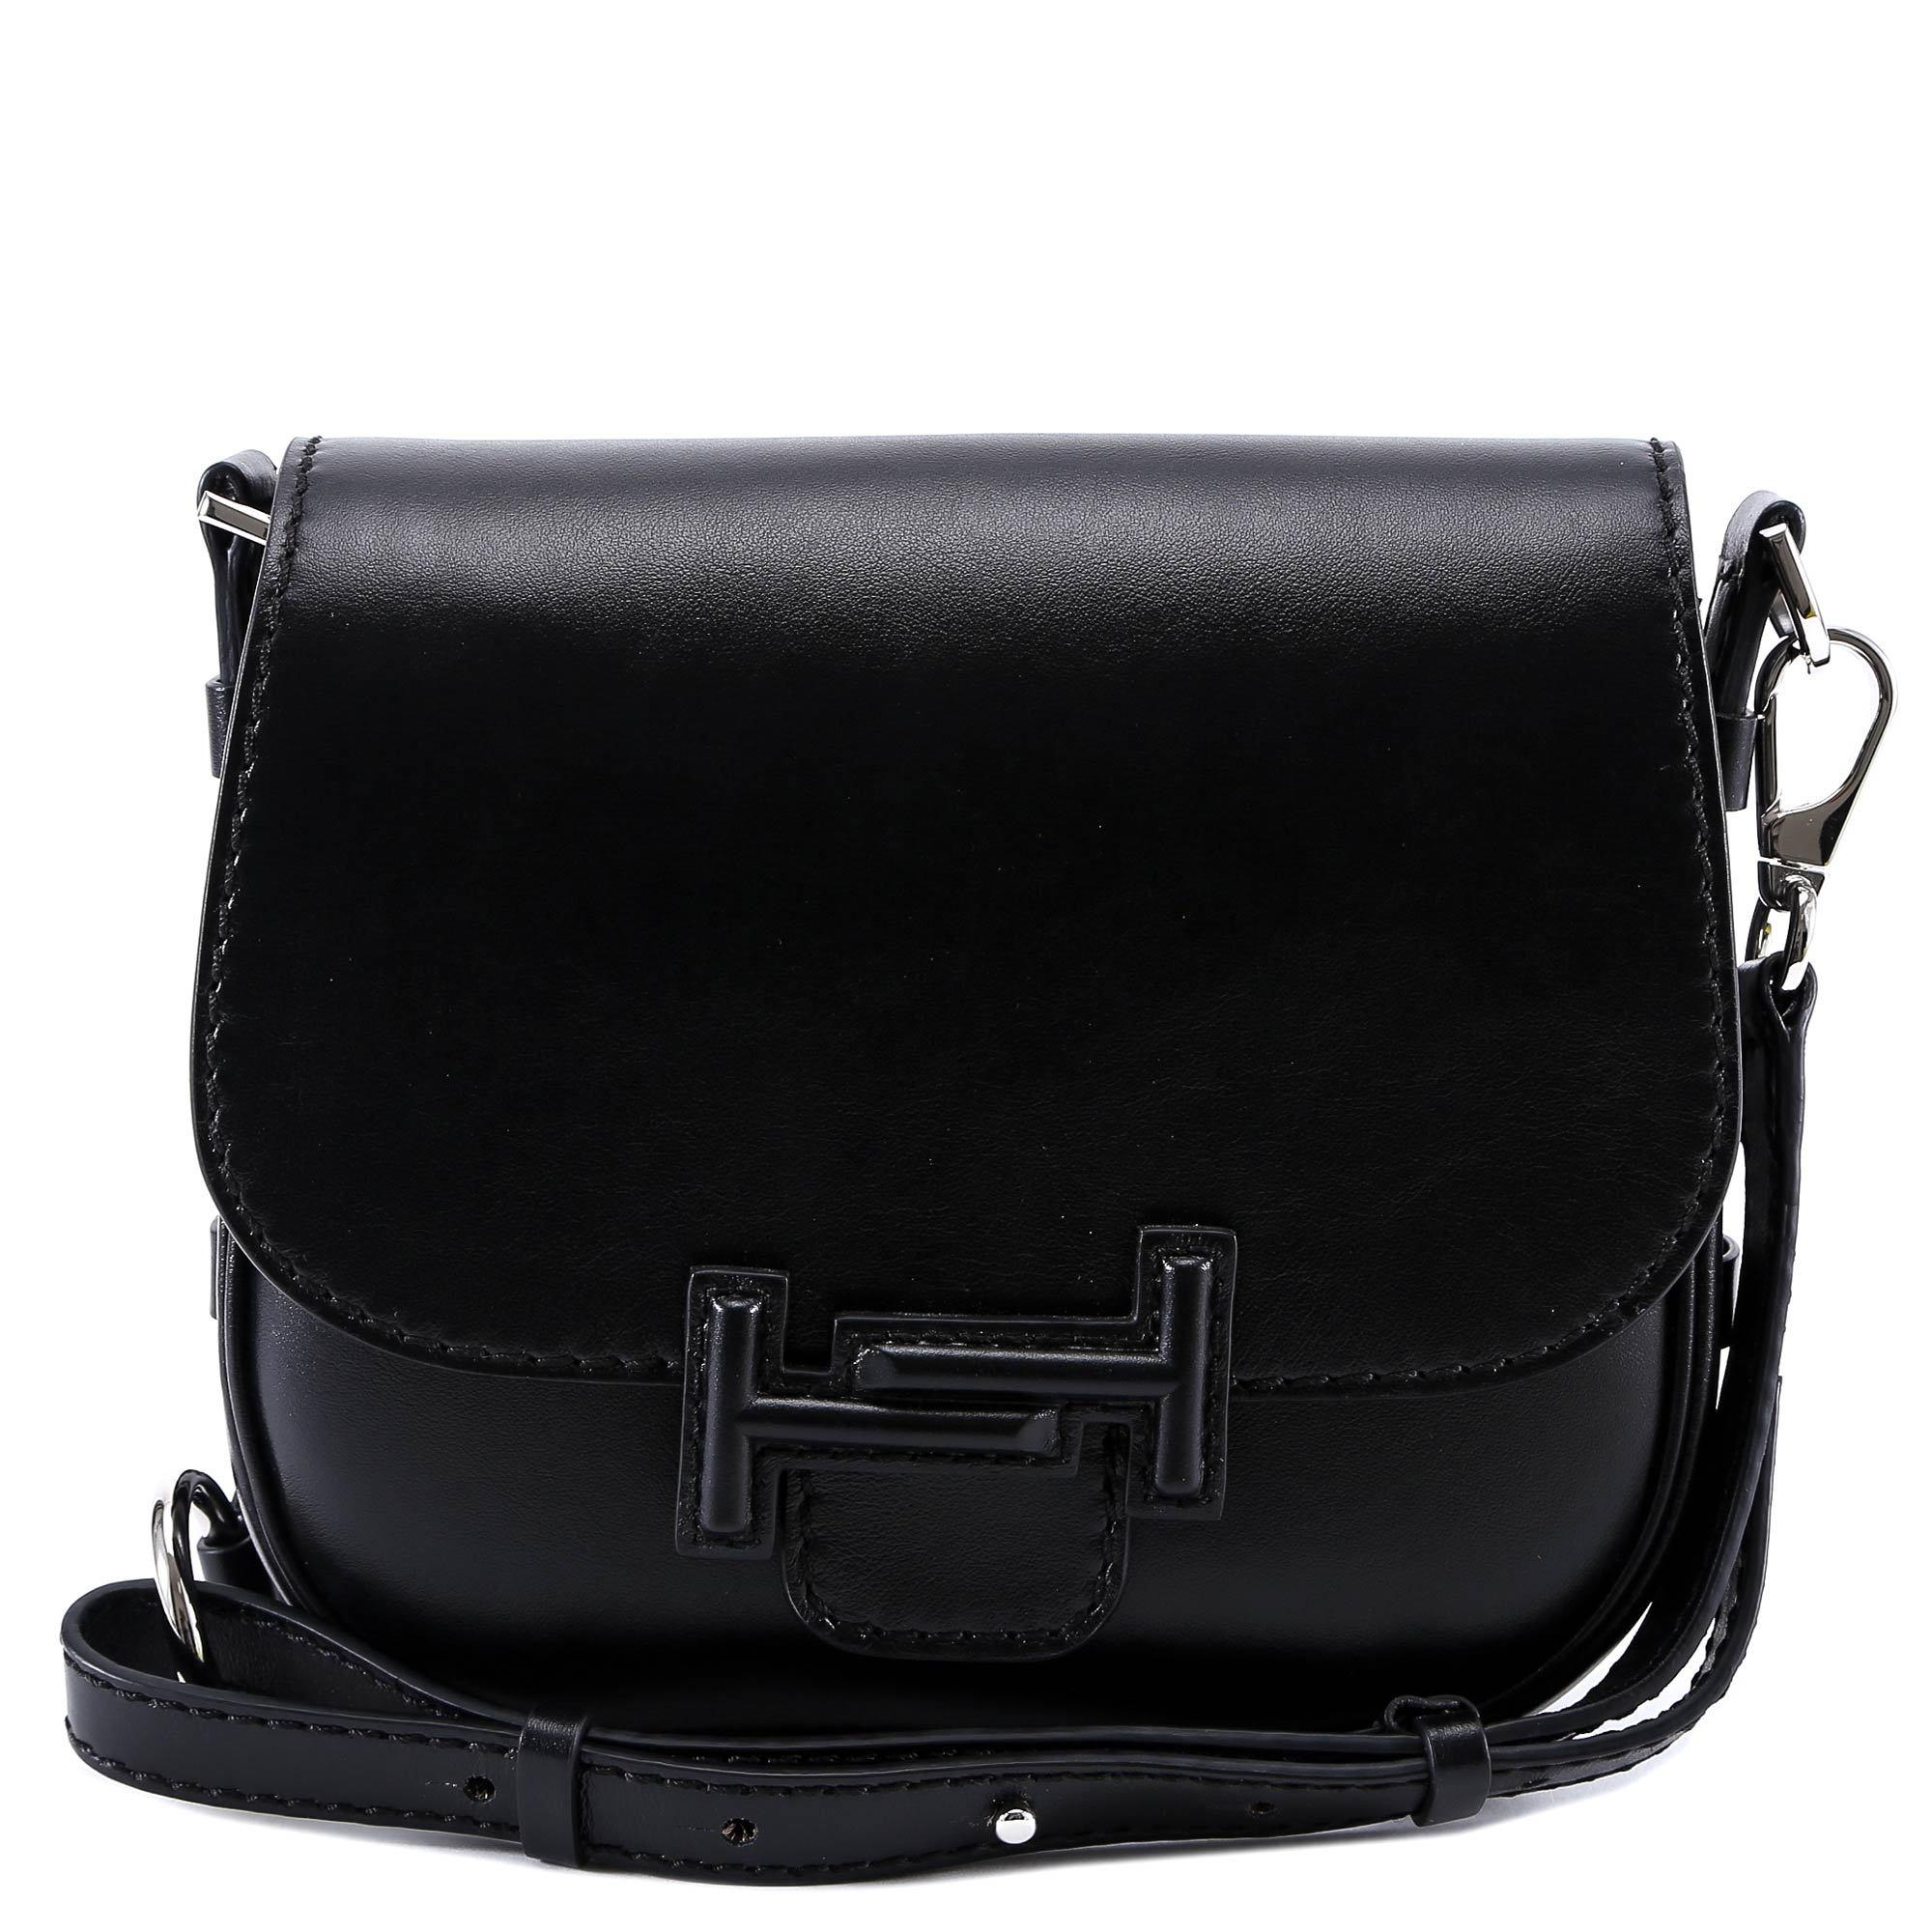 9a4593eb08 Lyst - Tod'S Double T Saddle Bag in Black